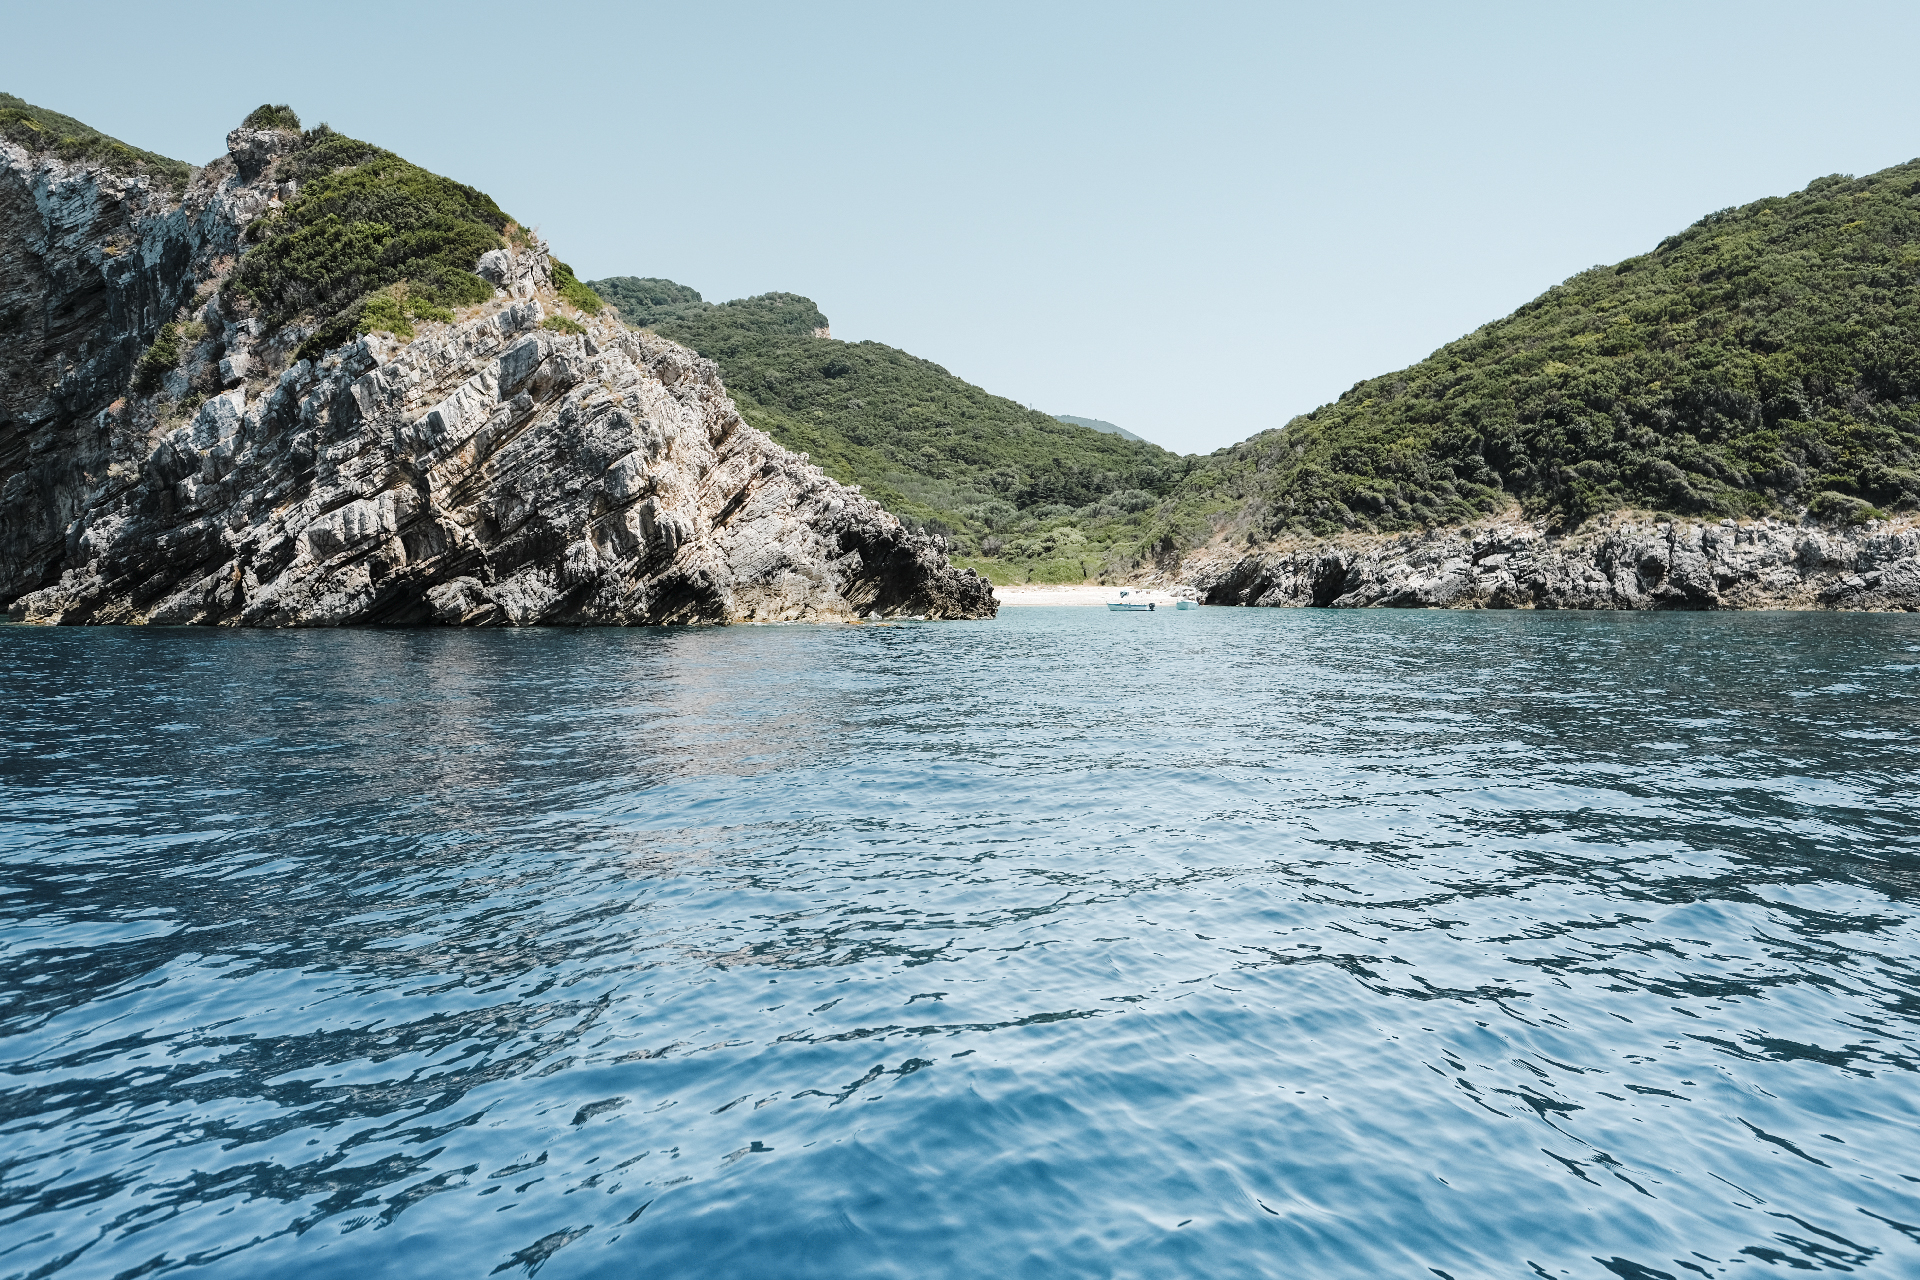 Cliffs and beach of the Adriatic sea seen from a boat, things to do in Corfu